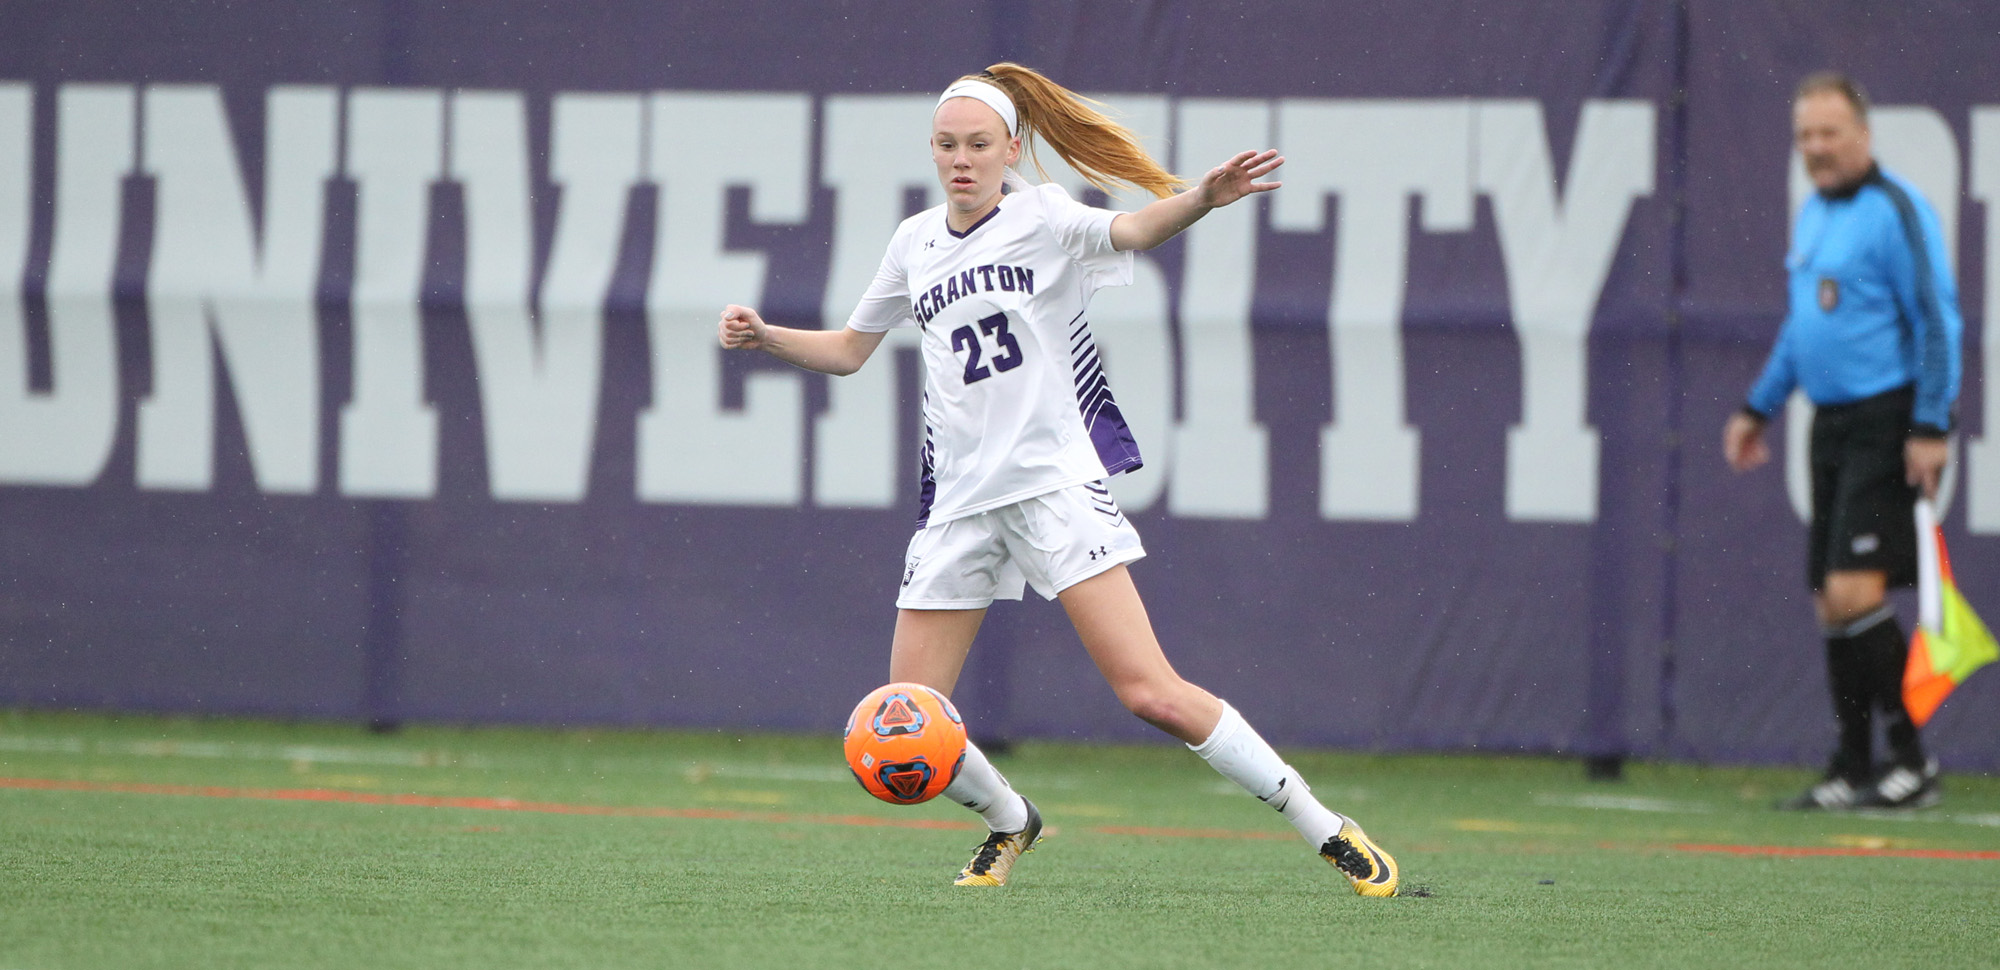 Junior Mazie Stiles posted her 12th career assist at Haverford on Sunday, as Scranton dropped a 2-1 decision to the host Fords.